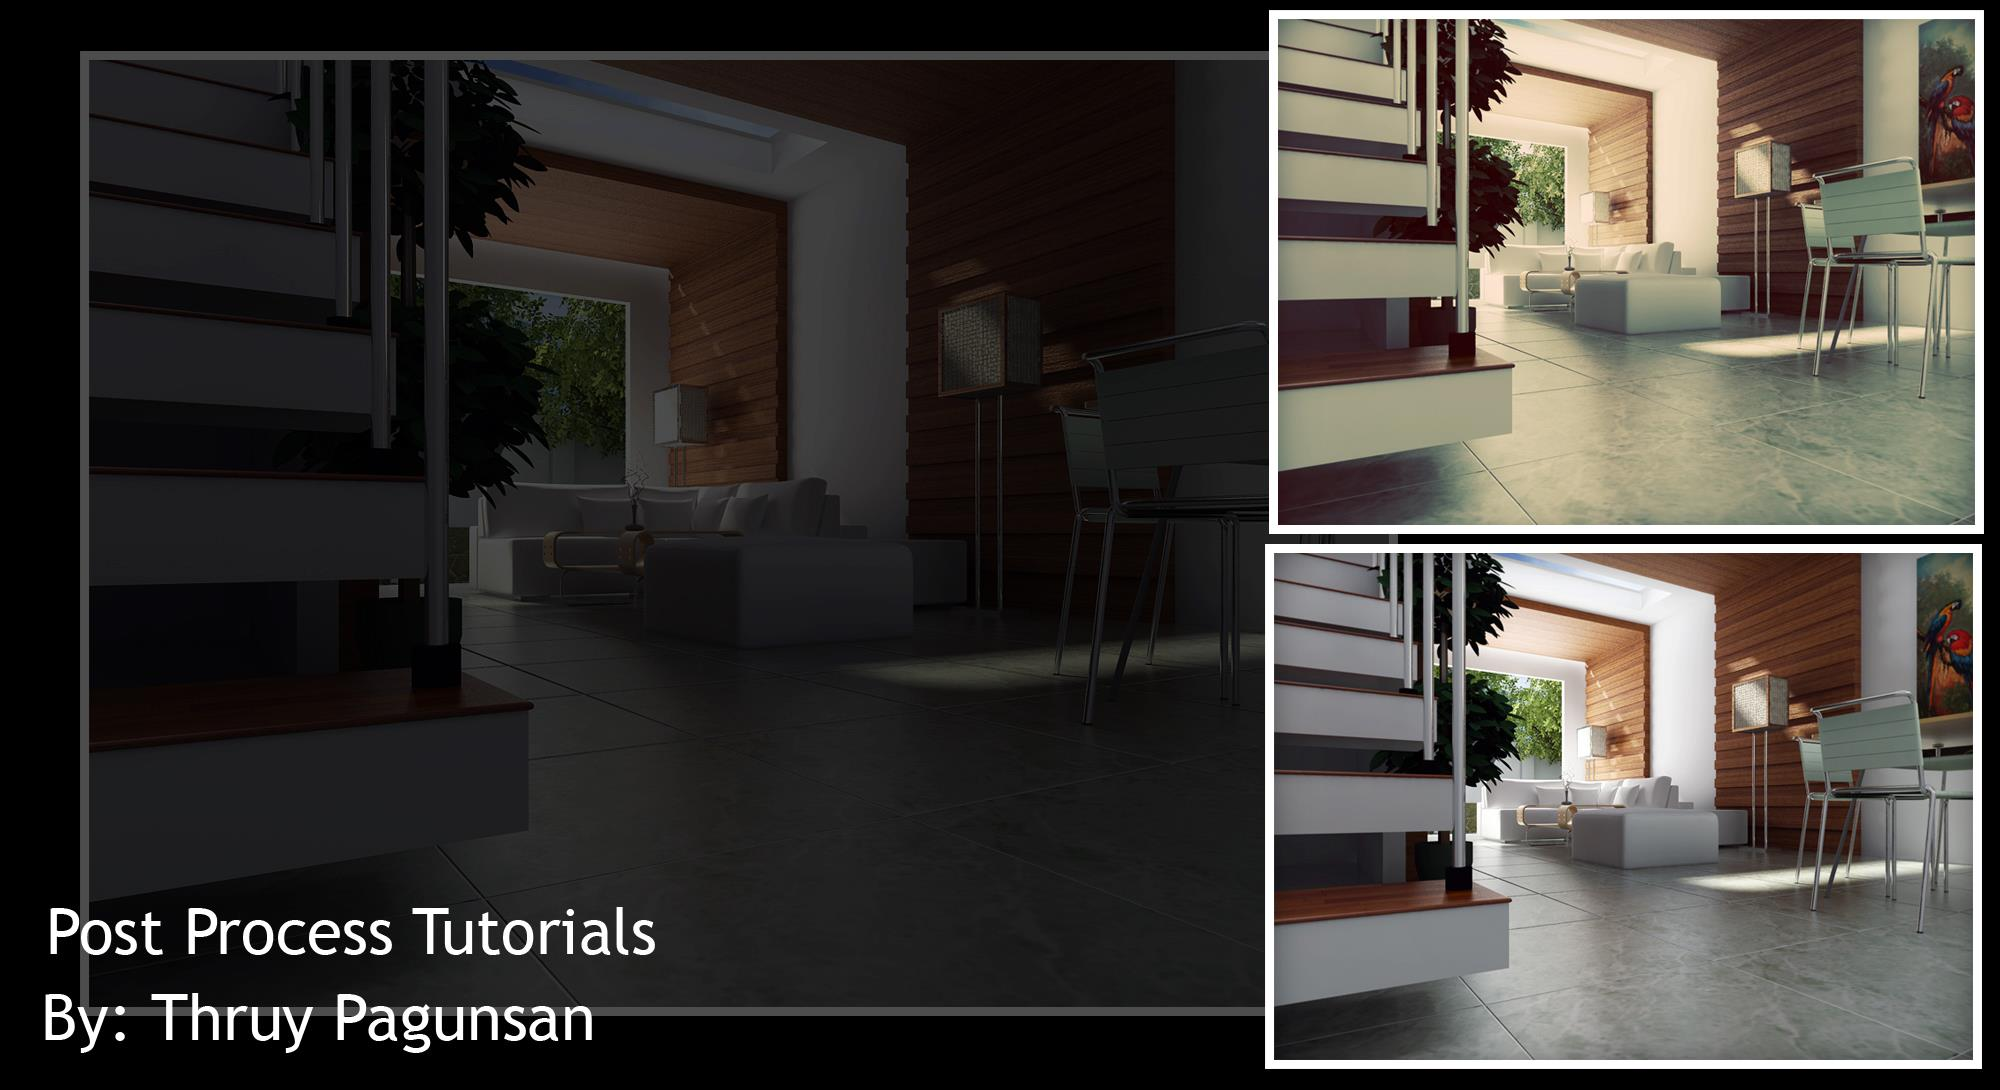 Post process tutorials render in sketchup and post process in post process tutorials render in sketchup and post process in photoshop baditri Gallery